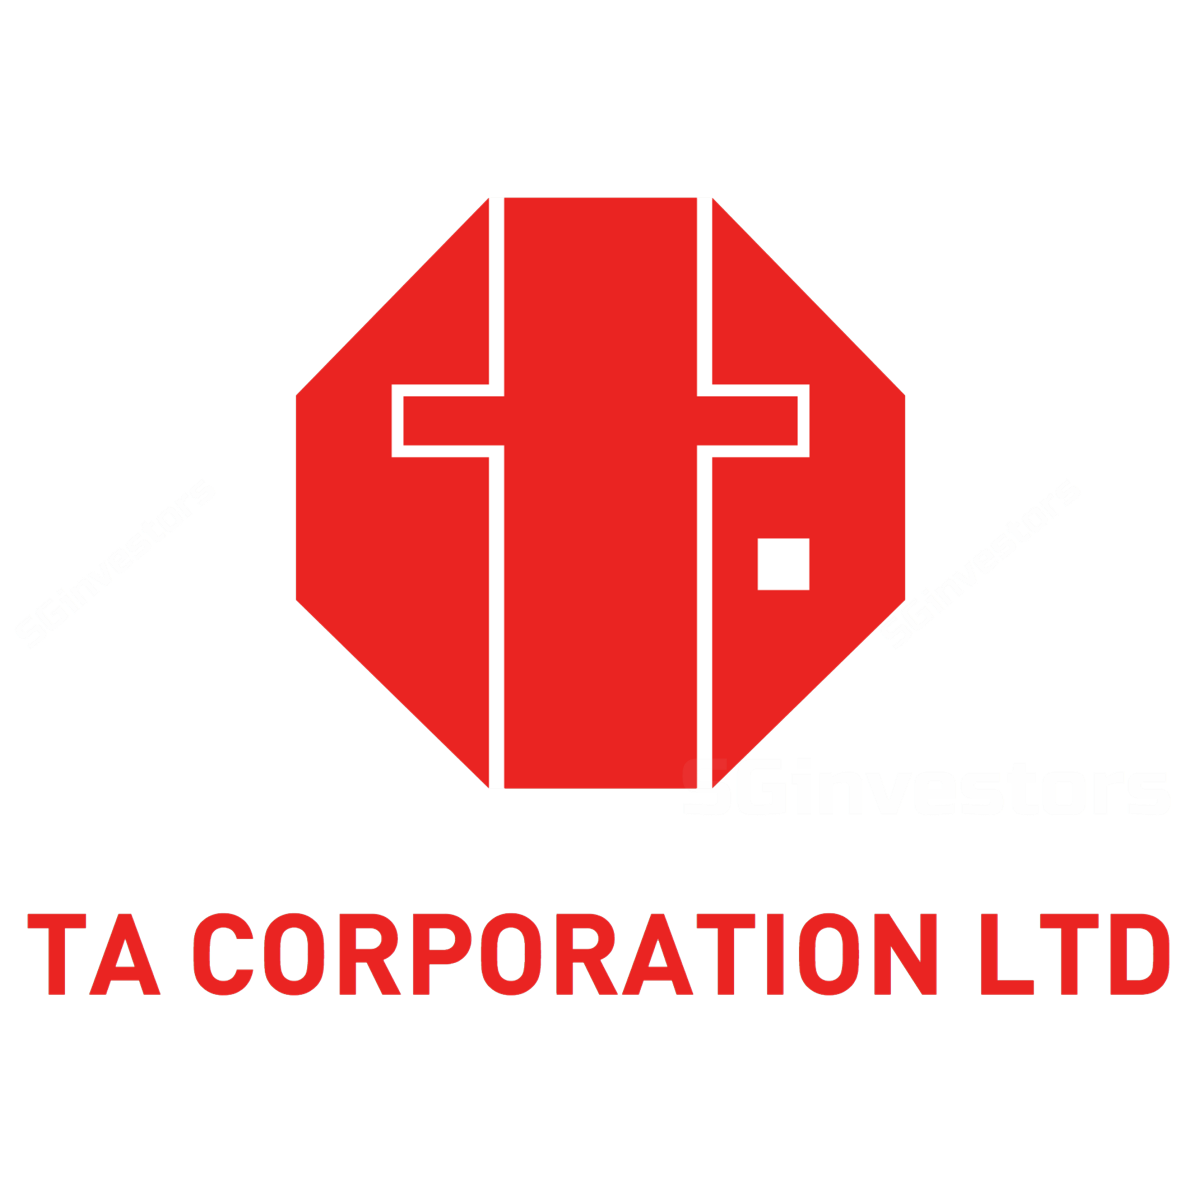 TA Corp - CIMB Research 2018-04-09: Established Construction Company